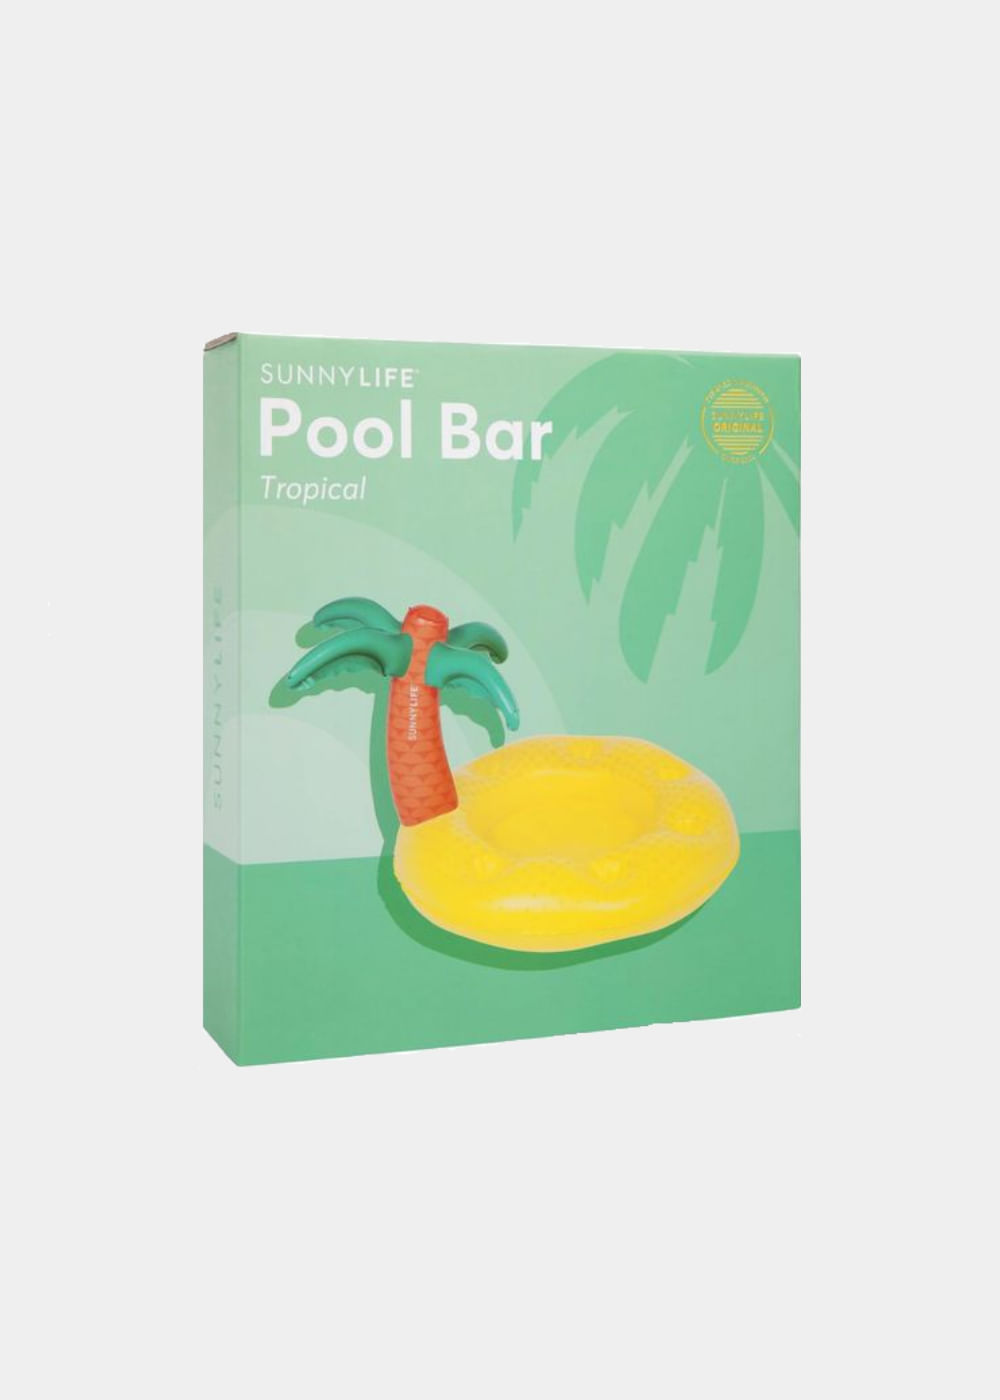 pool-bar-sunnylife